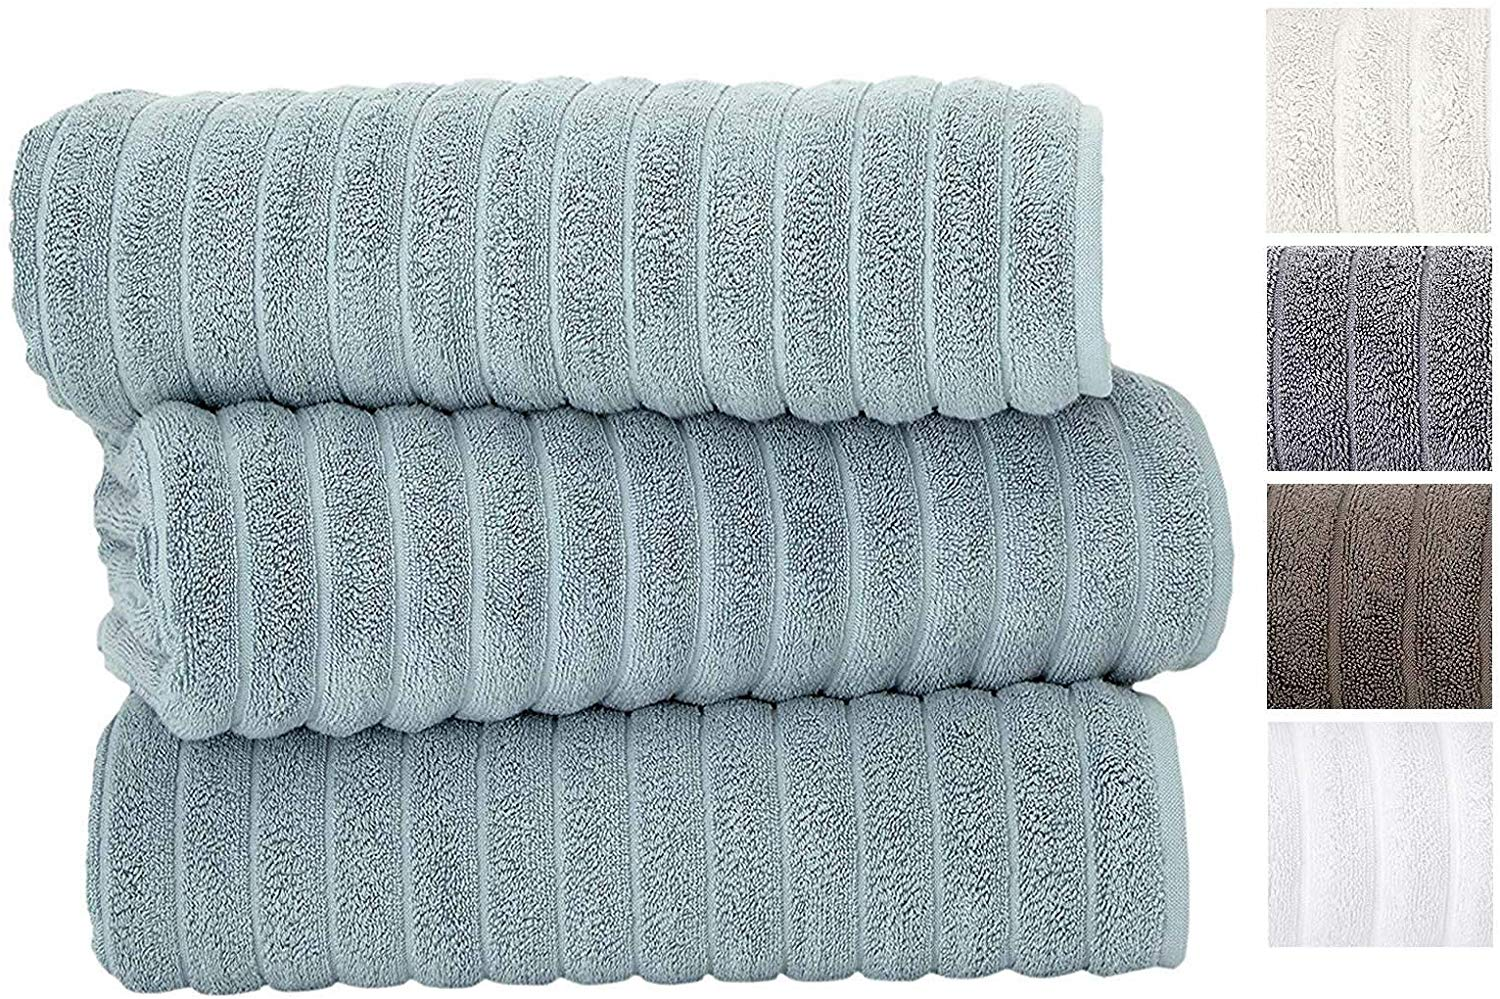 Top 10 Best Bath Sheets in 2021 Reviews